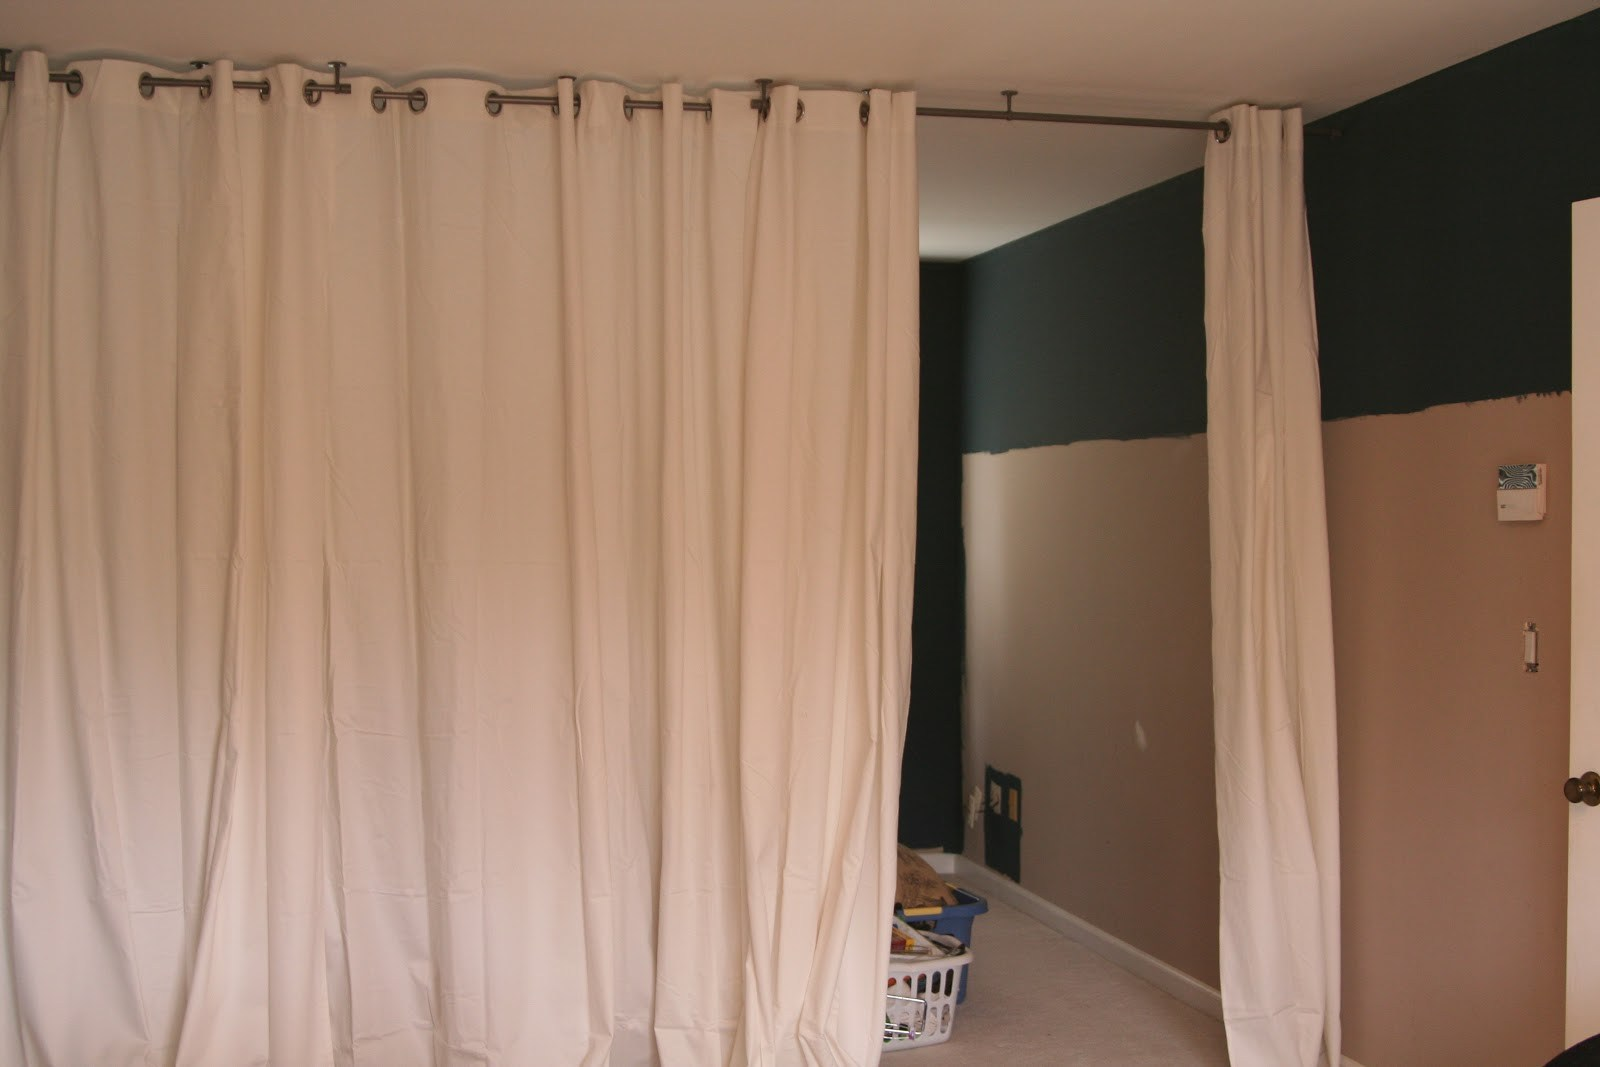 Curtains as A Room Divider | Diy Curtain Room Divider | Room Divider Curtains